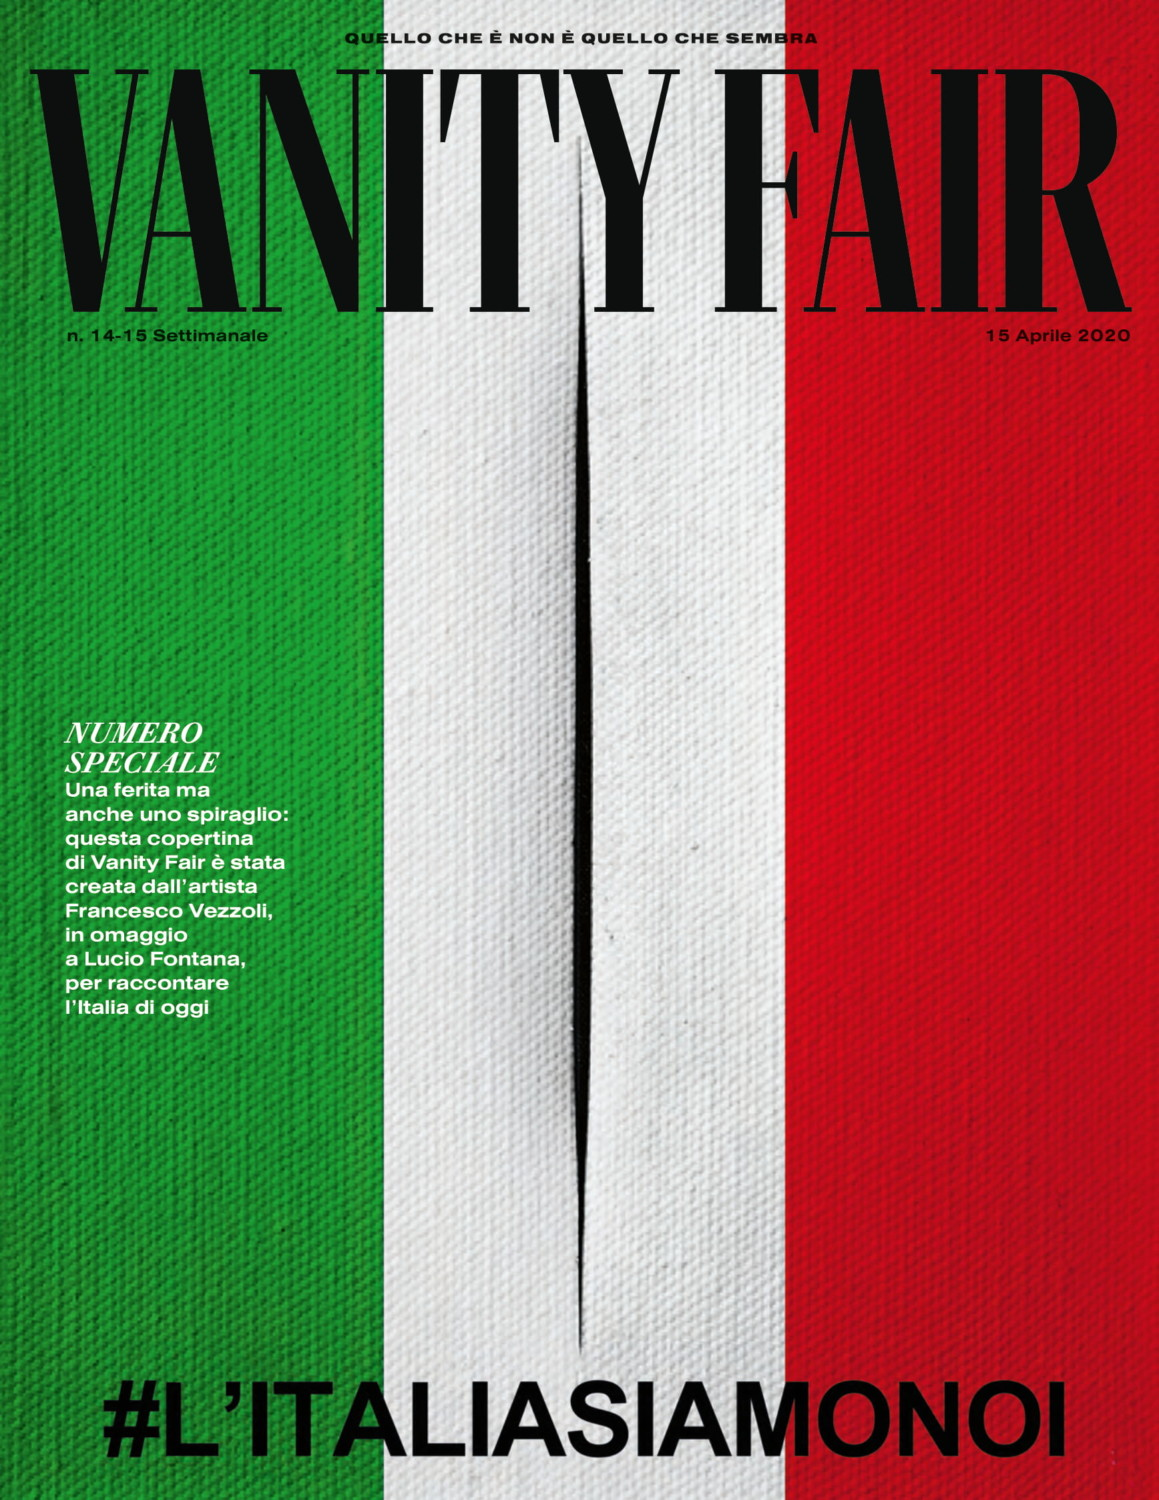 Vanity Fair Italia april 2020 cover